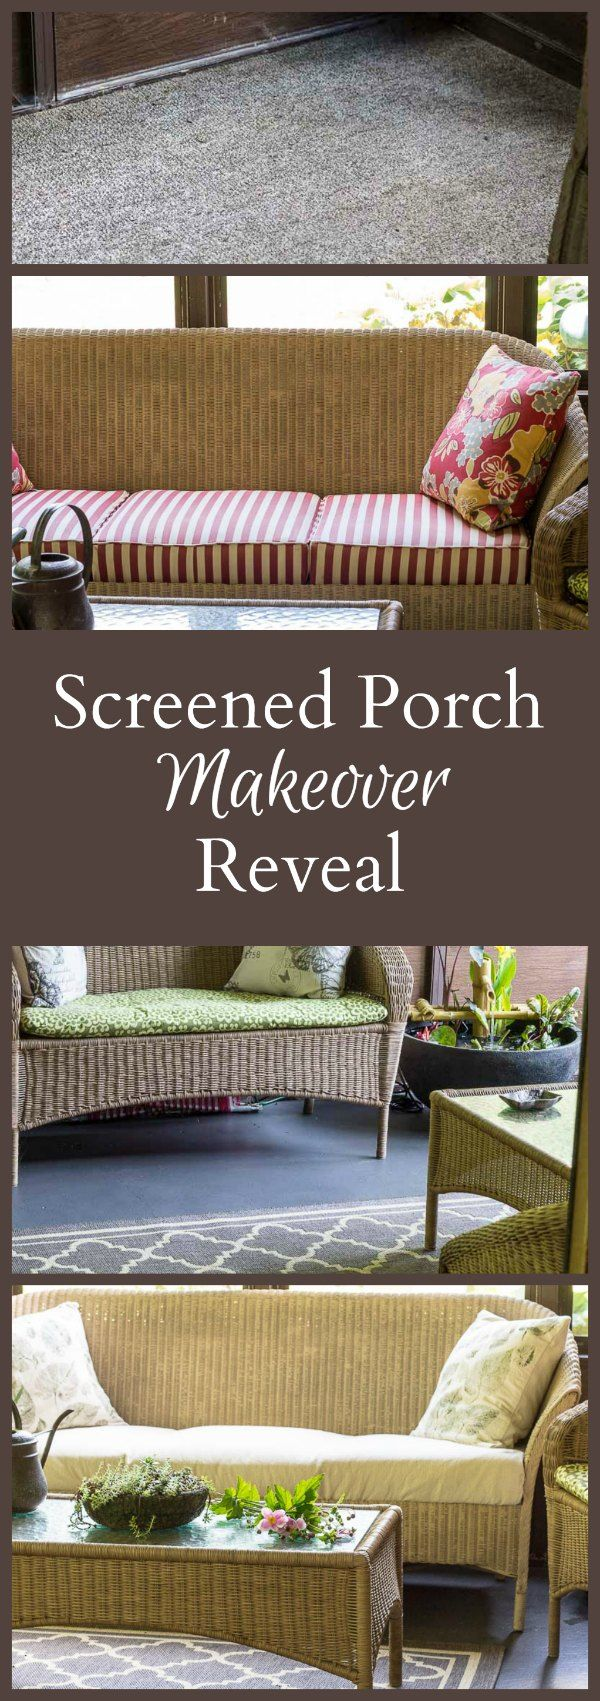 A few diy projects and a beautiful patio pond are the key to this much needed porch makeover, transforming it from old and outdated to fresh and serene.